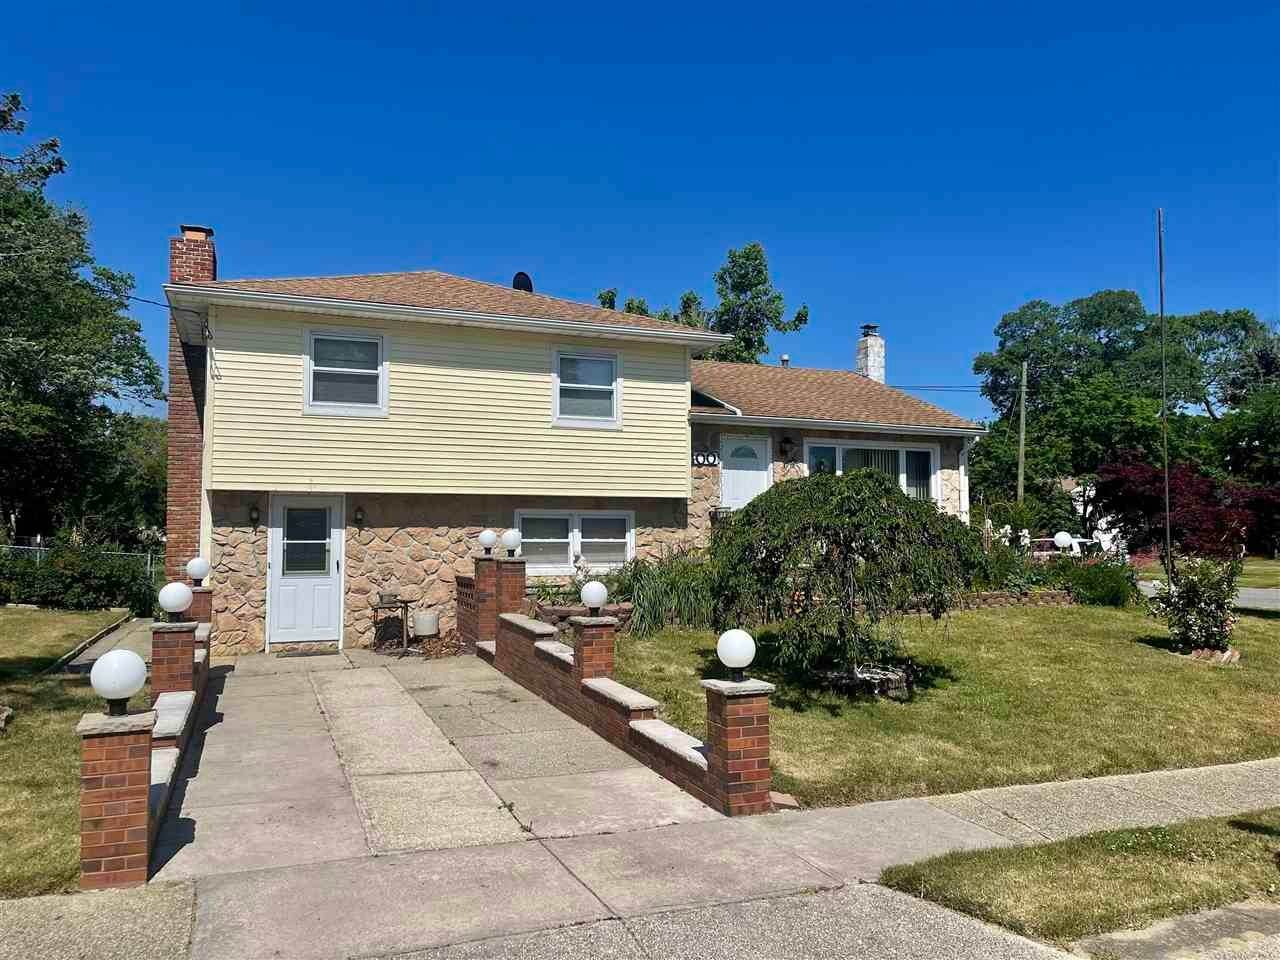 2. Single Family Homes for Sale at 400 Winslow Avenue North Cape May, New Jersey 08204 United States